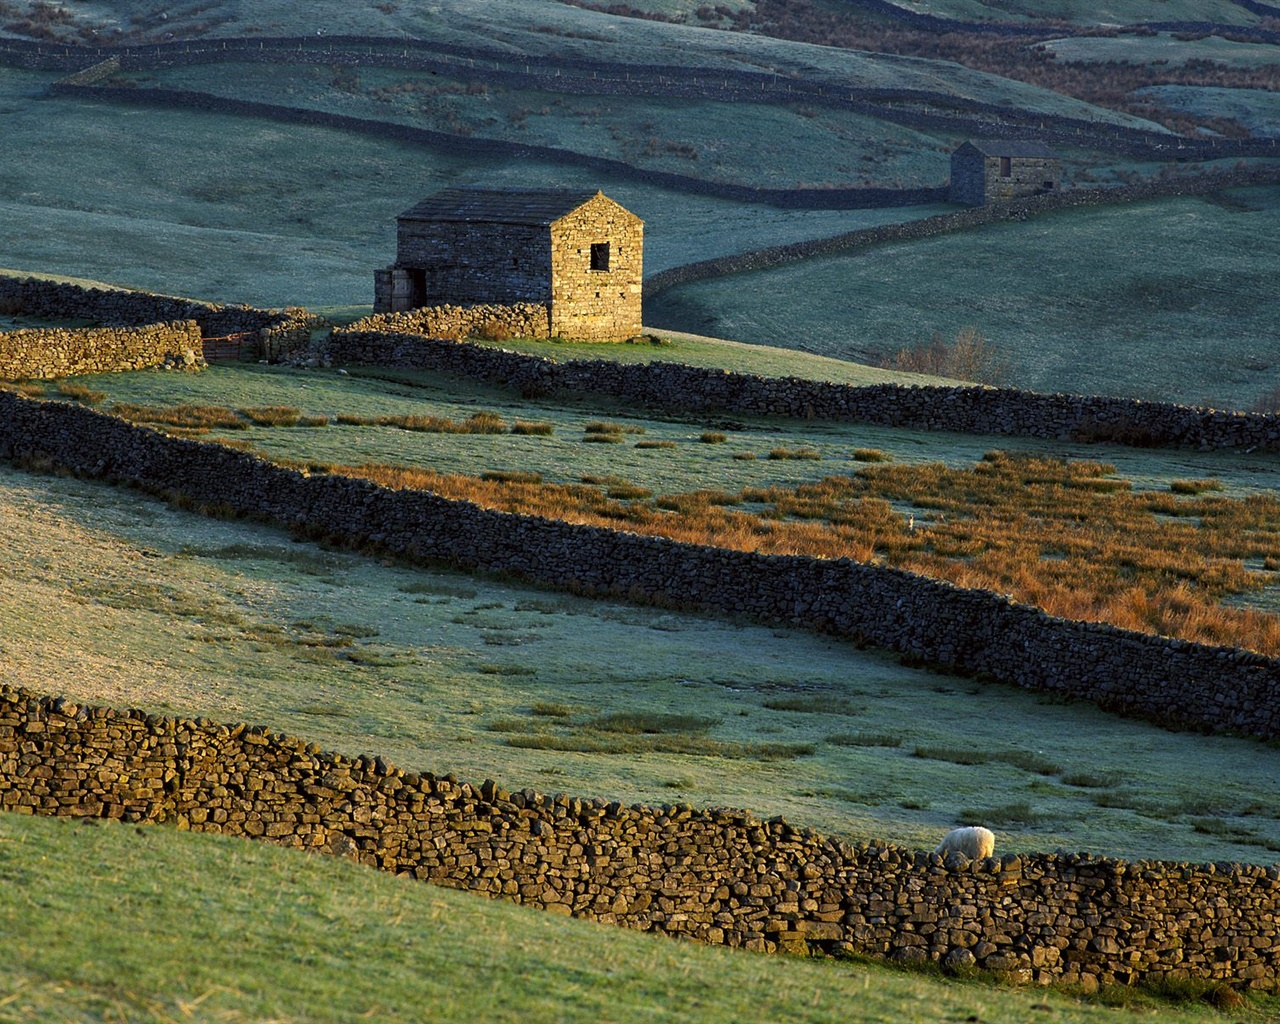 Stone house, fence, grass, sheep 1280x1024 wallpaper